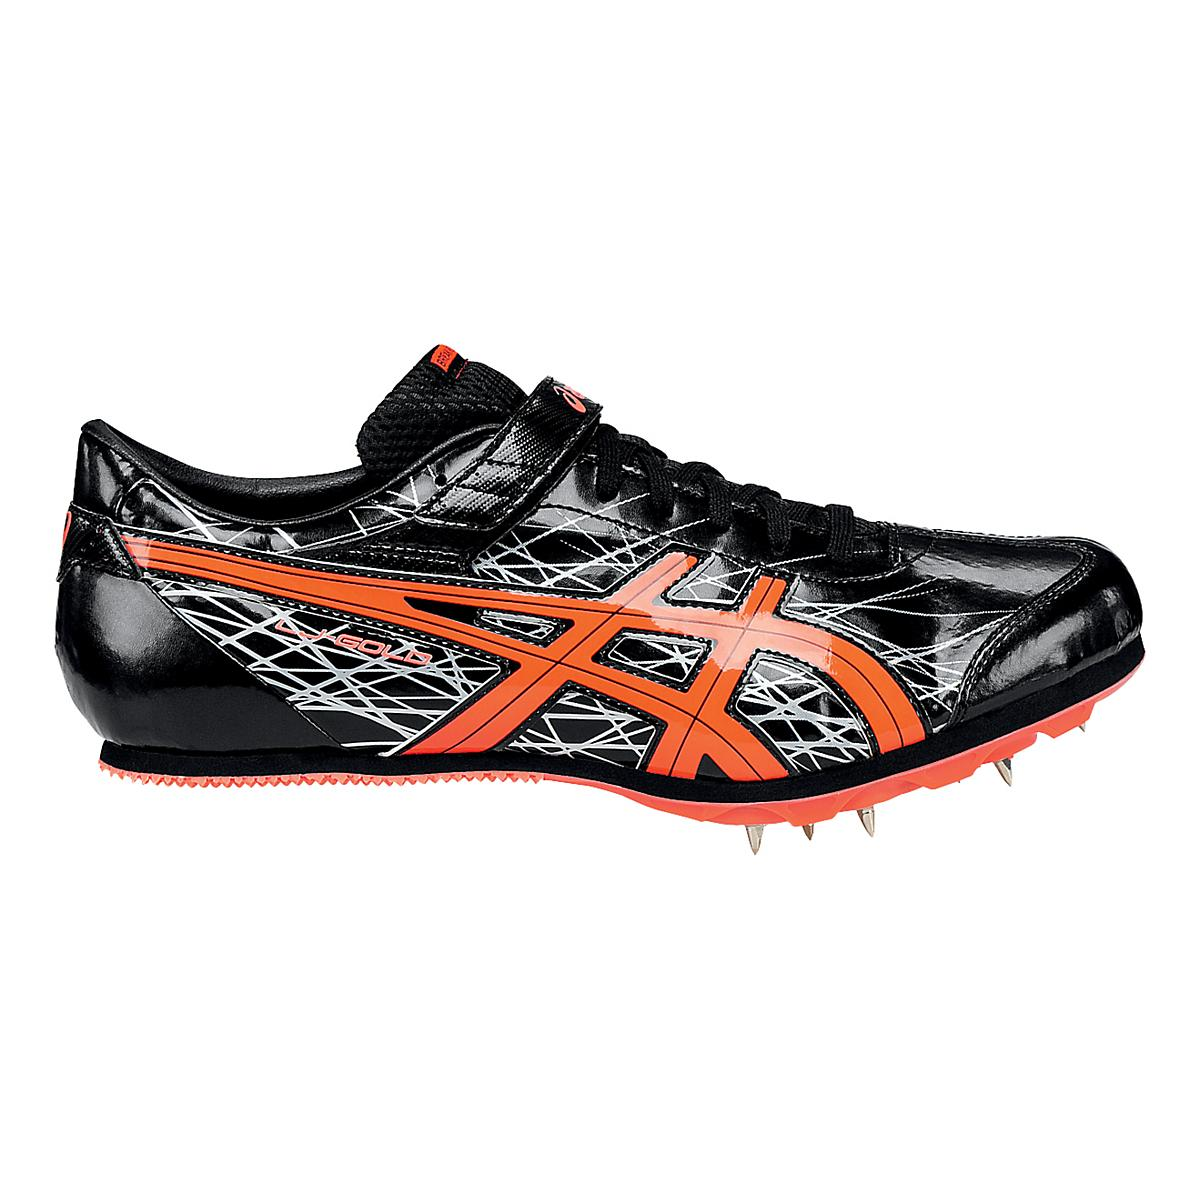 fd1c86f5b1a5 ASICS Long Jump Pro Track and Field Shoe at Road Runner Sports